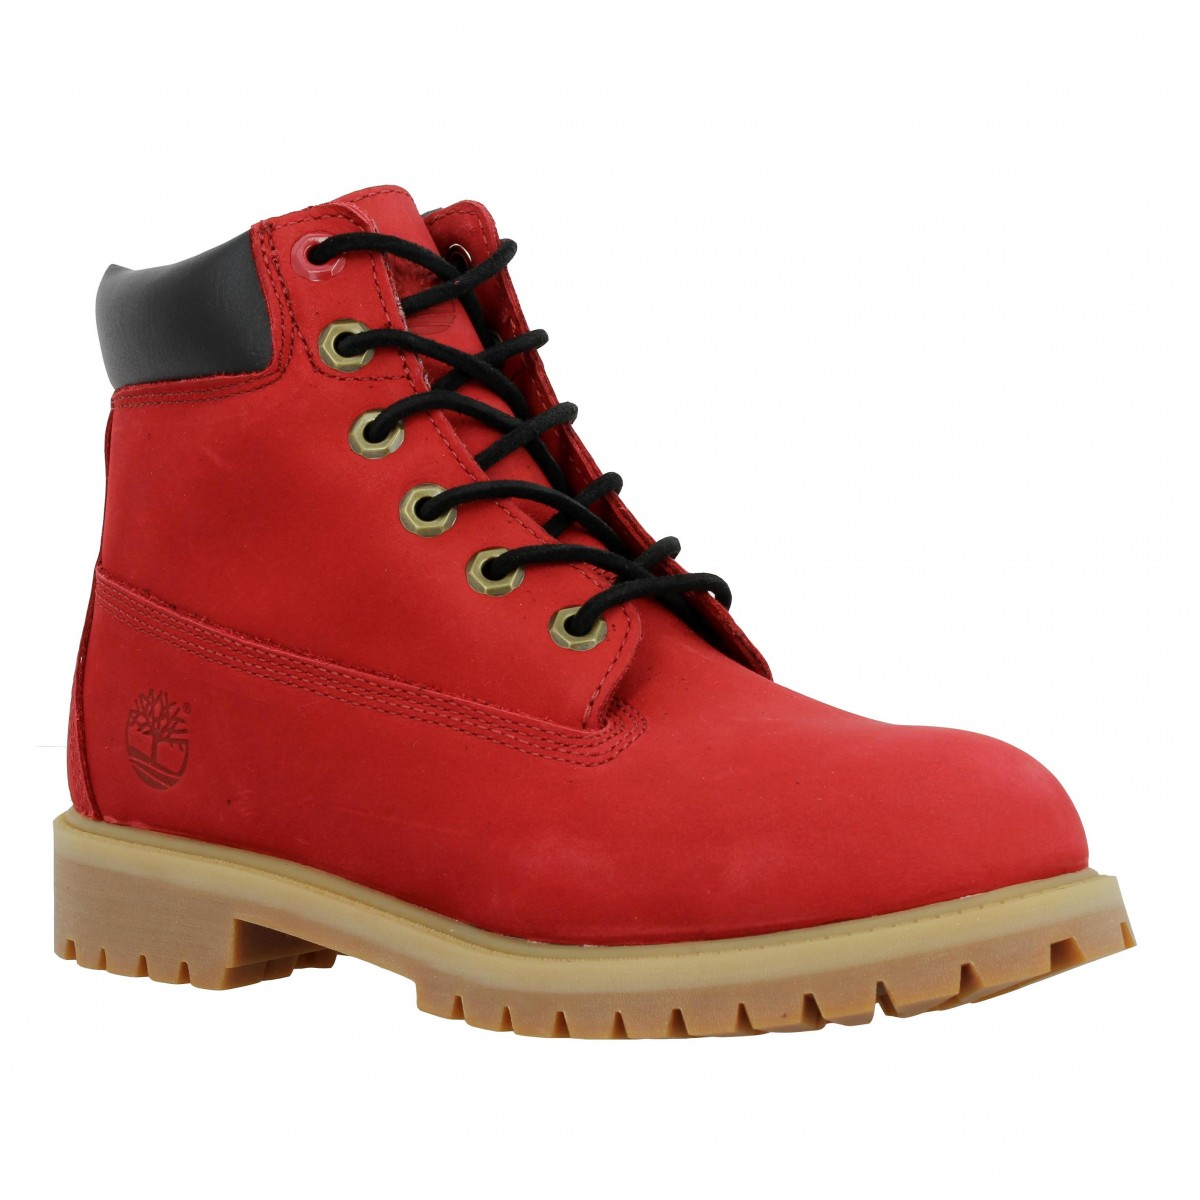 Bottines TIMBERLAND 6in Premium velours Femme Rouge